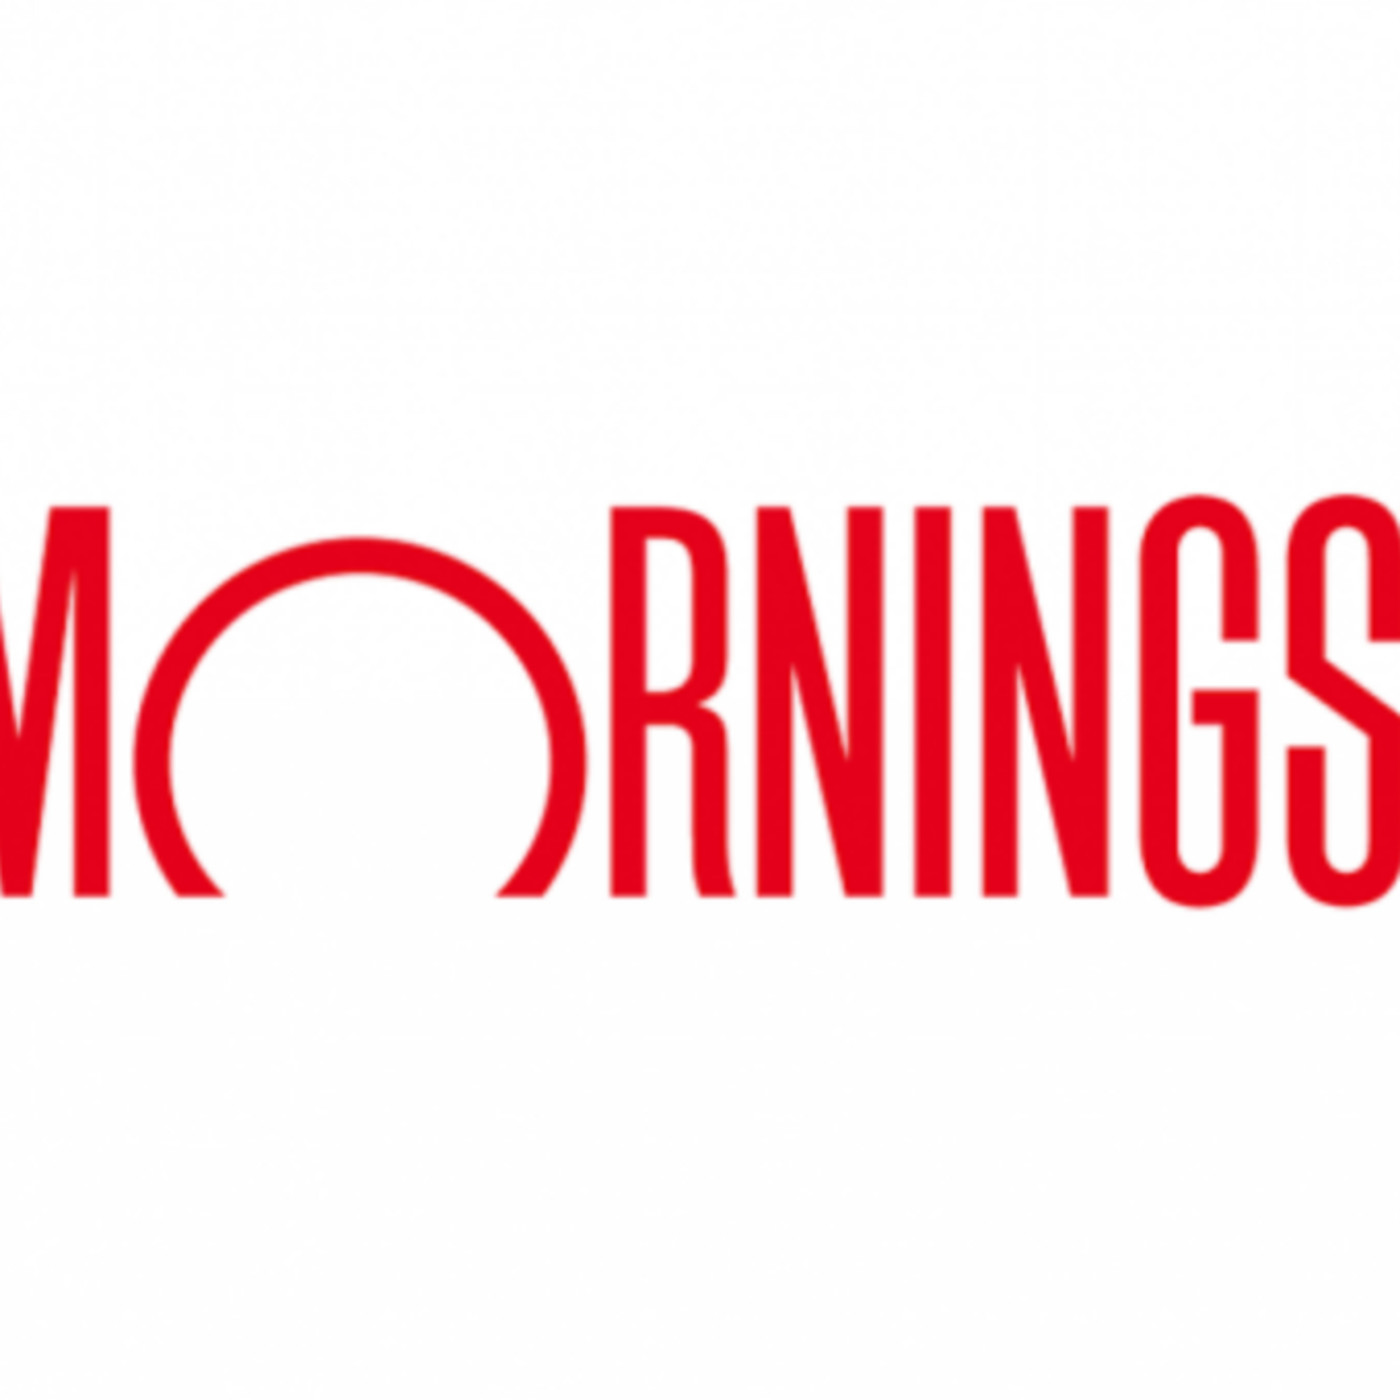 #6 Financast - Morningstar - Fernando Luque